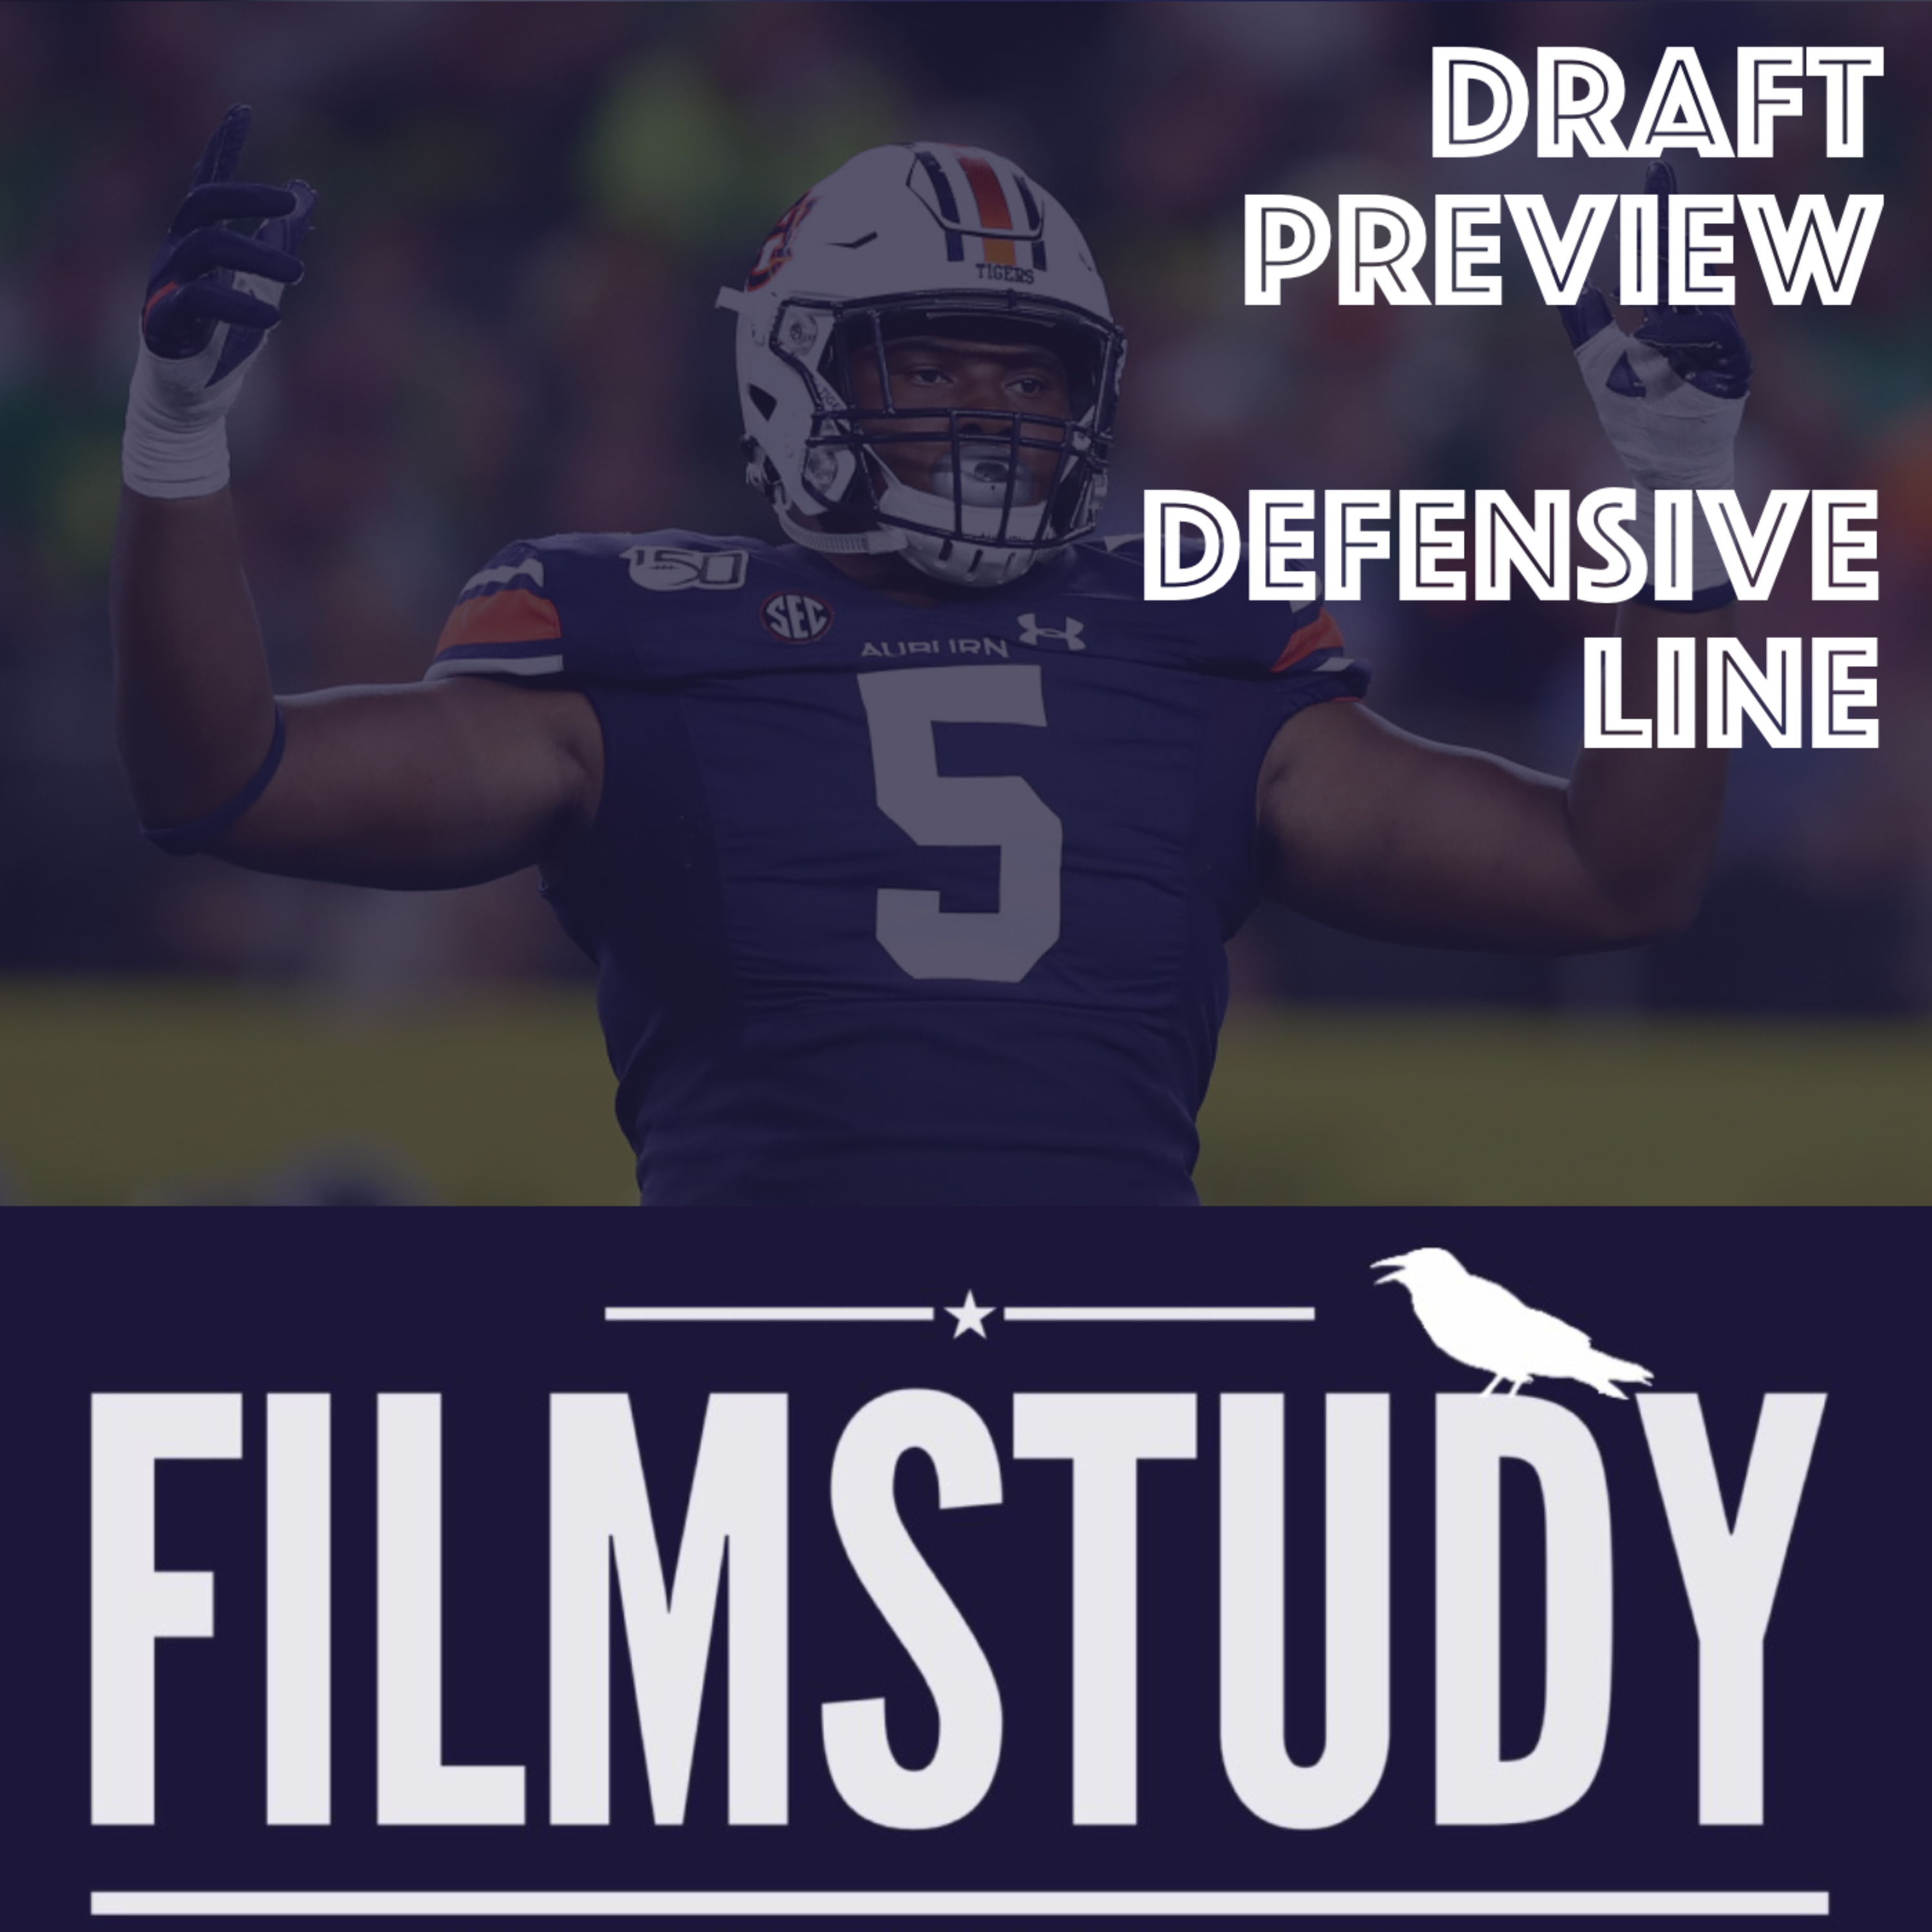 Draft Preview : Defensive Line